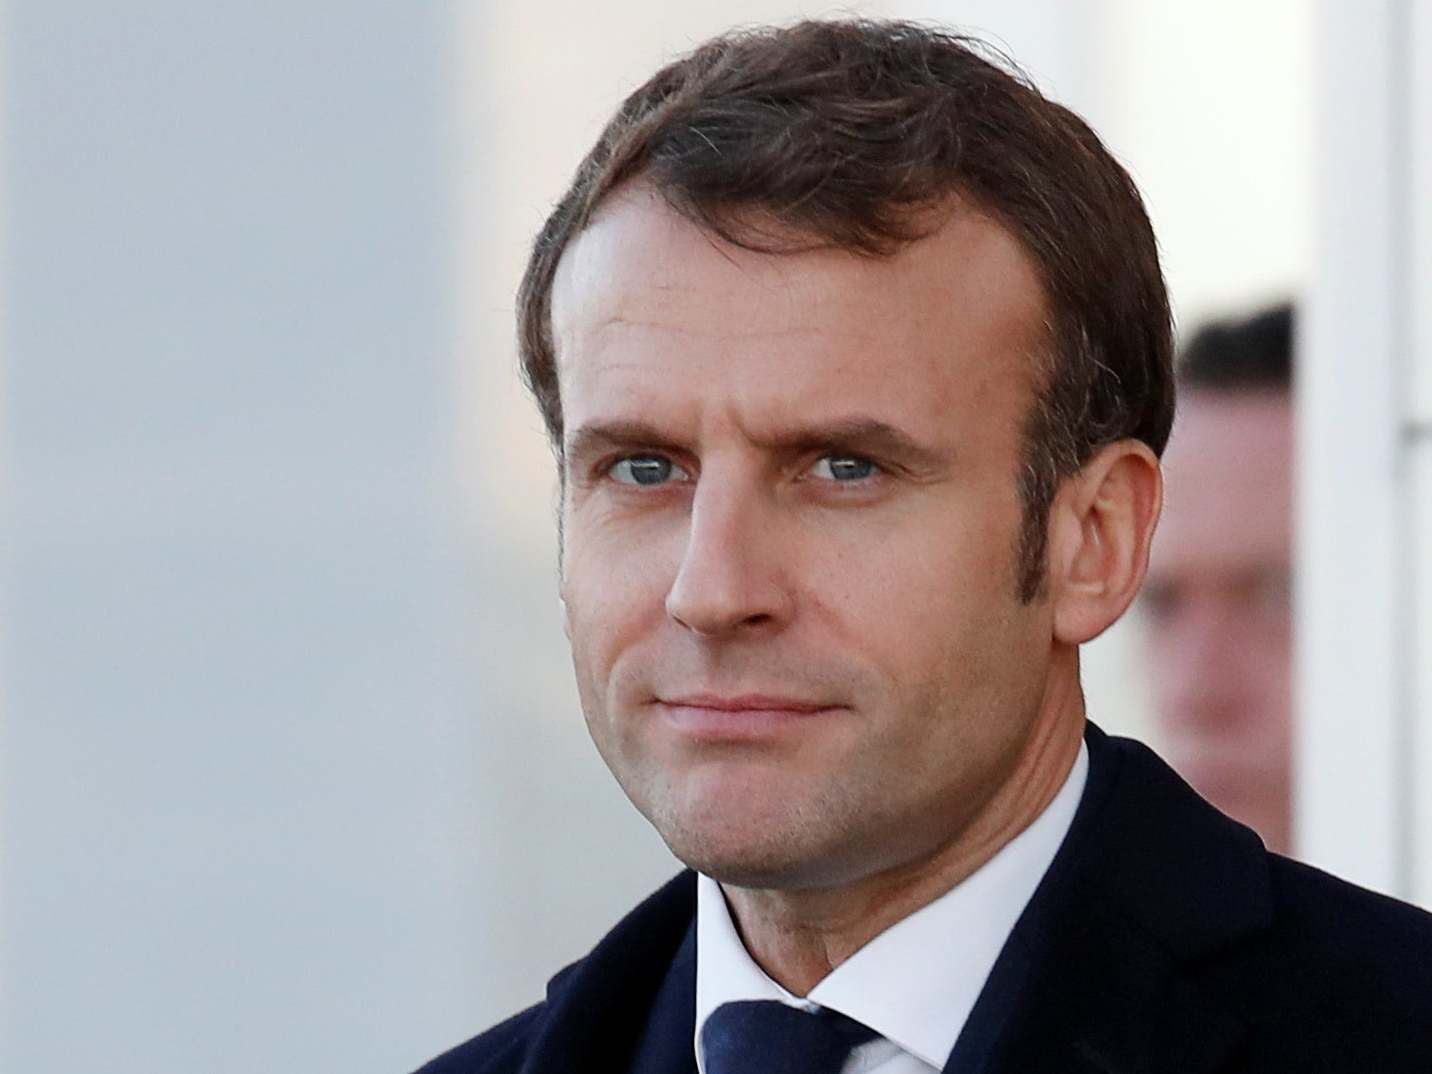 Emmanuel Macron Evacuated From Theatre As Protesters Try To Find Him The Independent The Independent